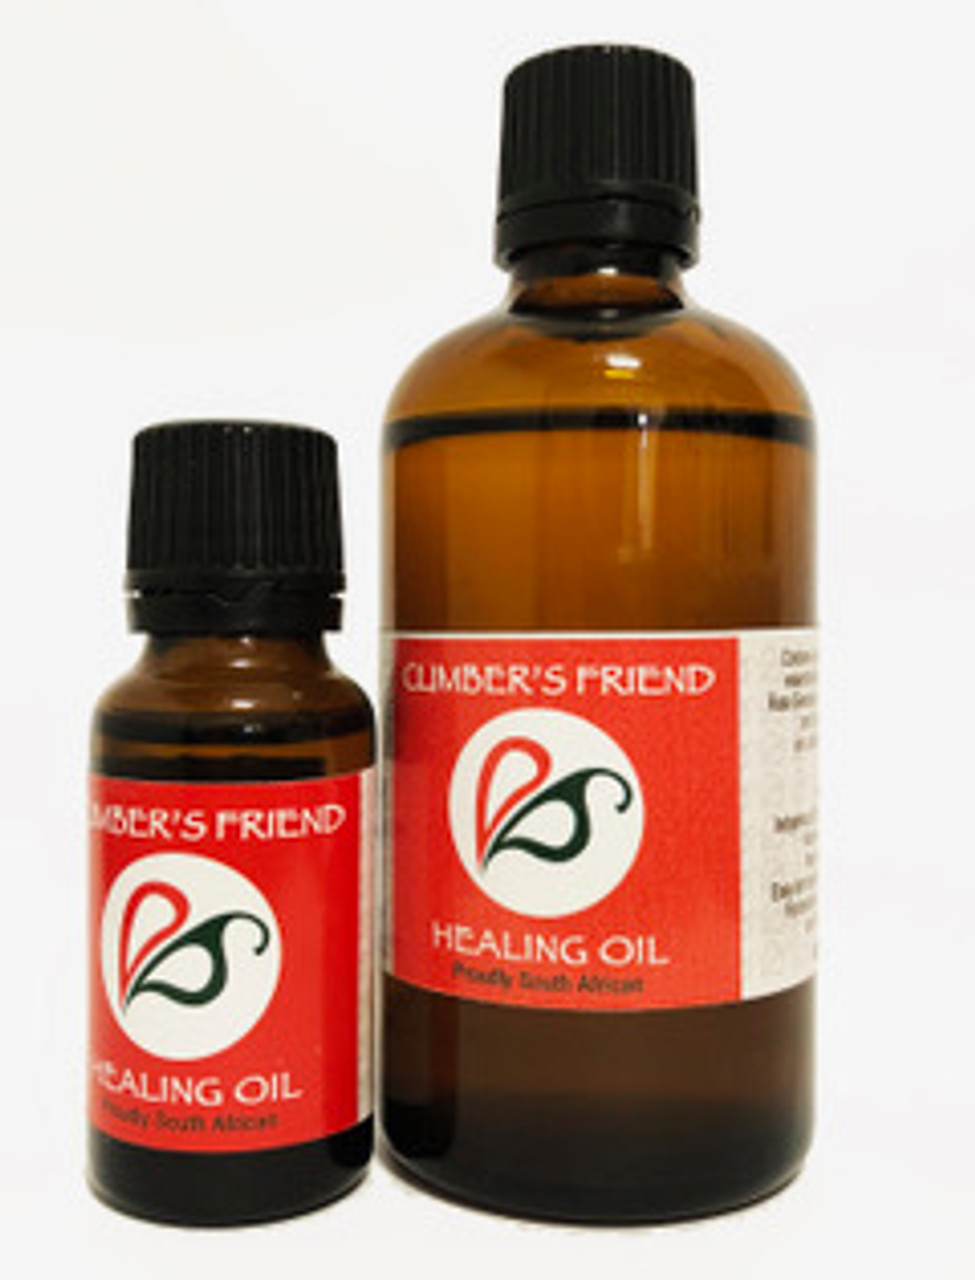 Climber's Friend Healing Oil